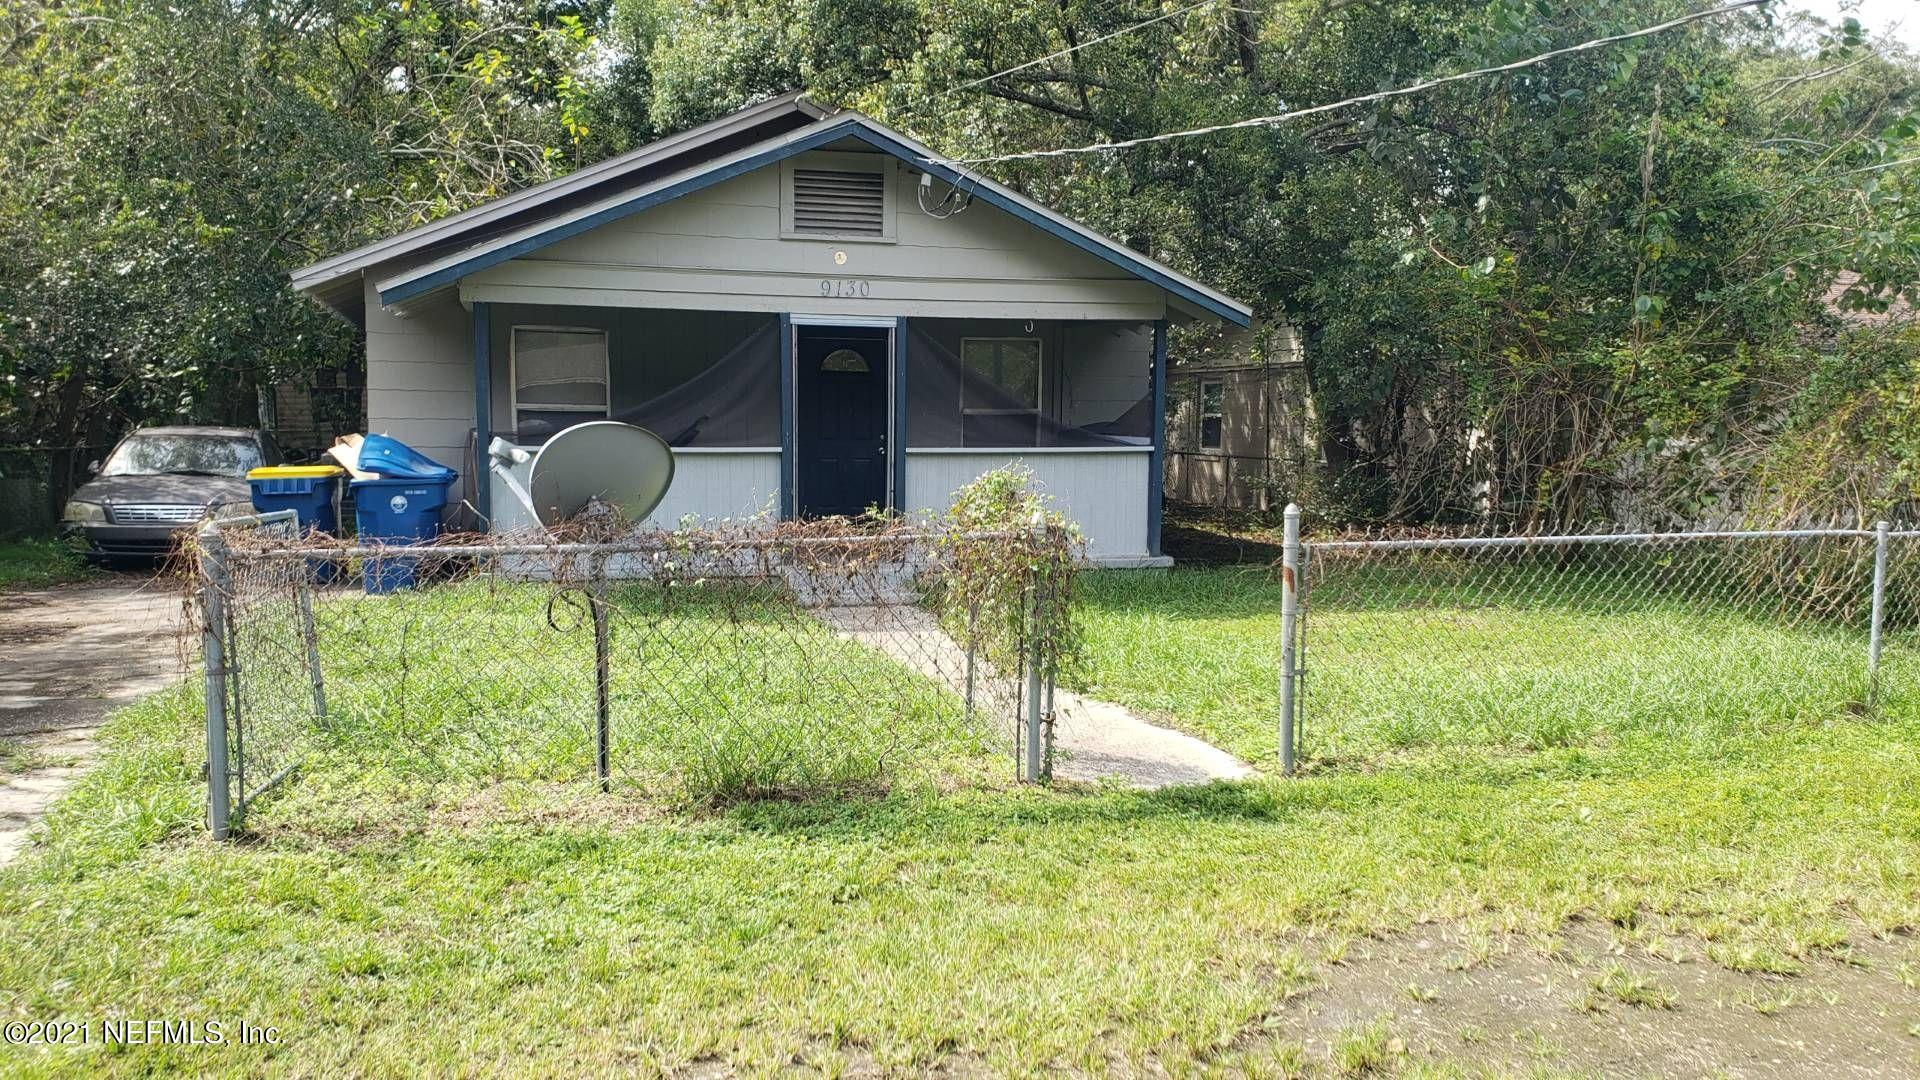 9130 JEFFERSON, JACKSONVILLE, FLORIDA 32208, 2 Bedrooms Bedrooms, ,1 BathroomBathrooms,Investment / MultiFamily,For sale,JEFFERSON,1091163